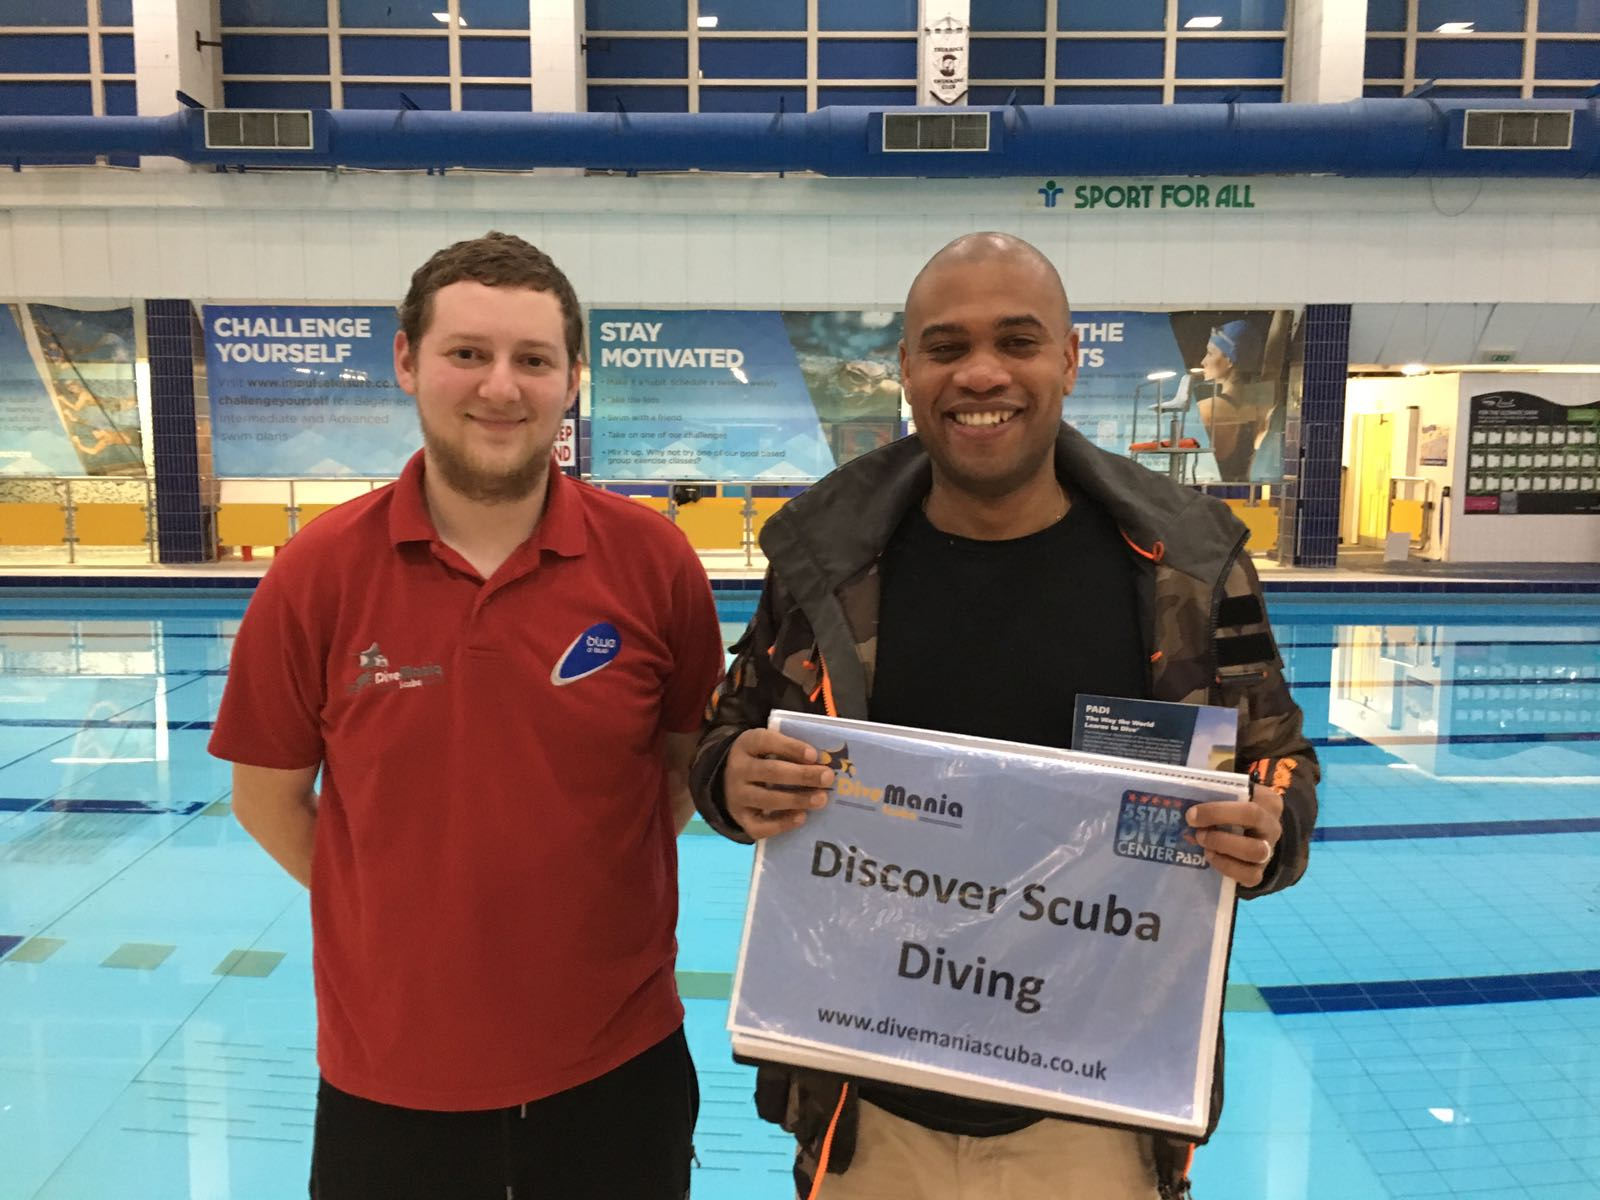 Discover Scuba for Aaron with Jamie